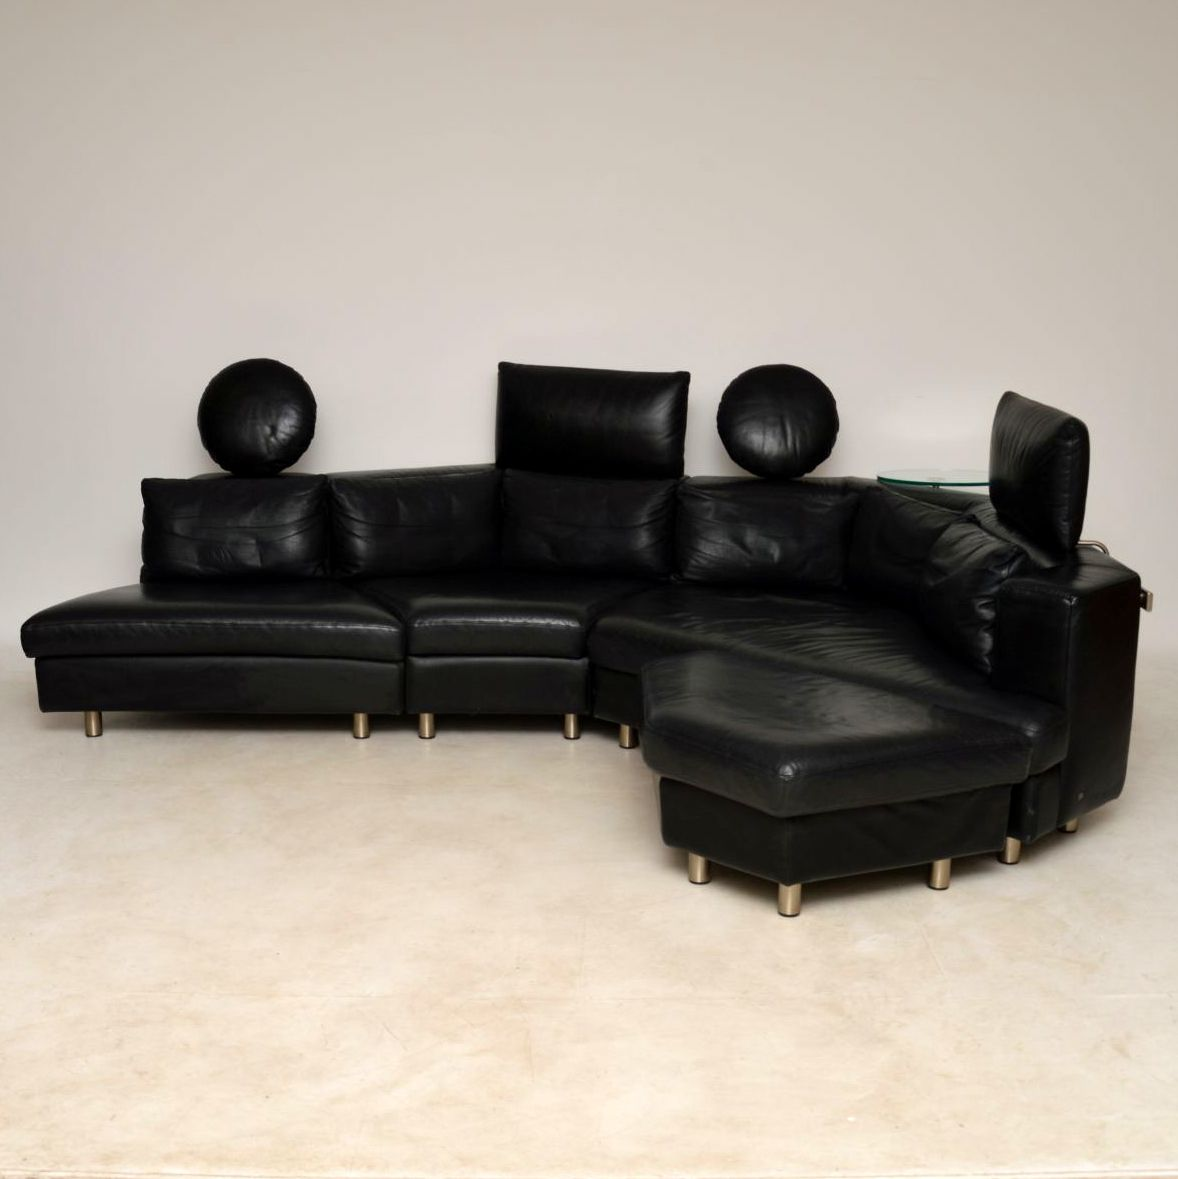 Rolf Benz Modular Sofa 222 1970s Vintage Leather Modular Sofa By Rolf Benz